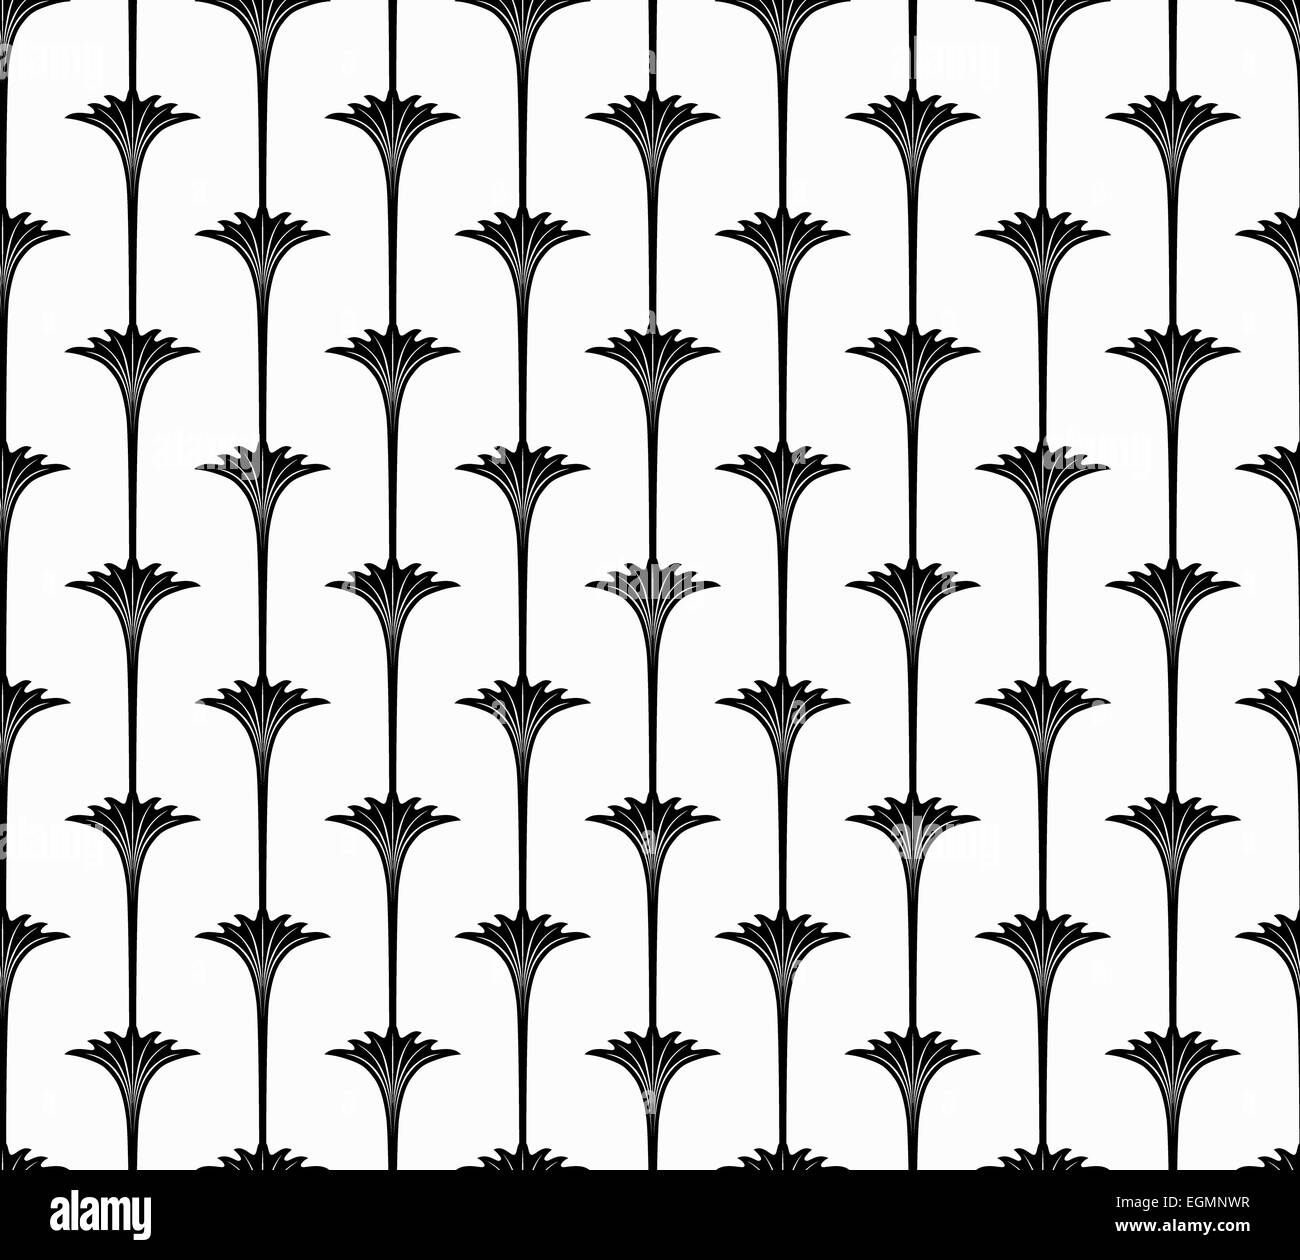 Elegant Black Floral Seamless Pattern from Simple Flowers with Long Stems on White Background Stock Photo